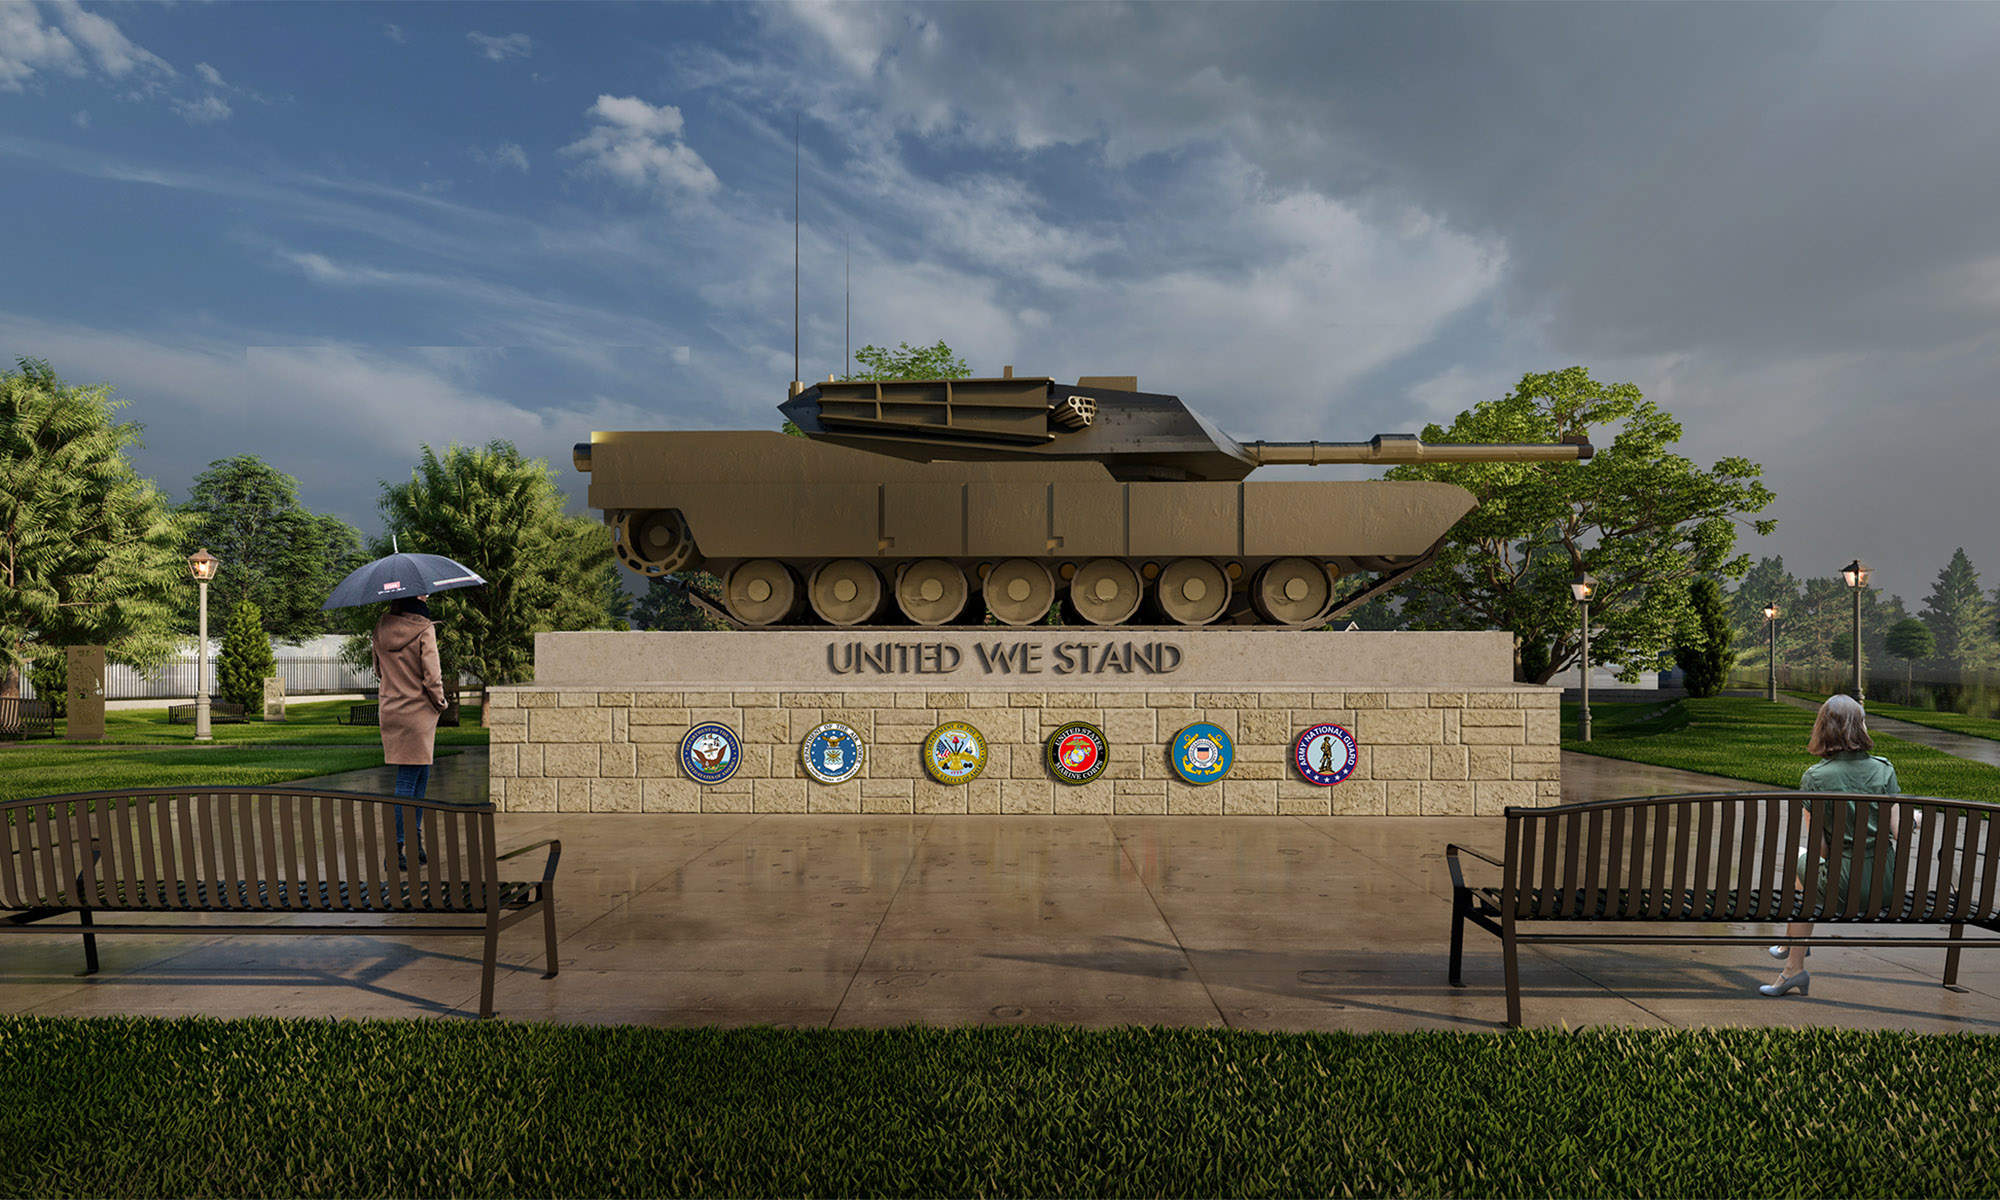 military tank displayed in a park setting